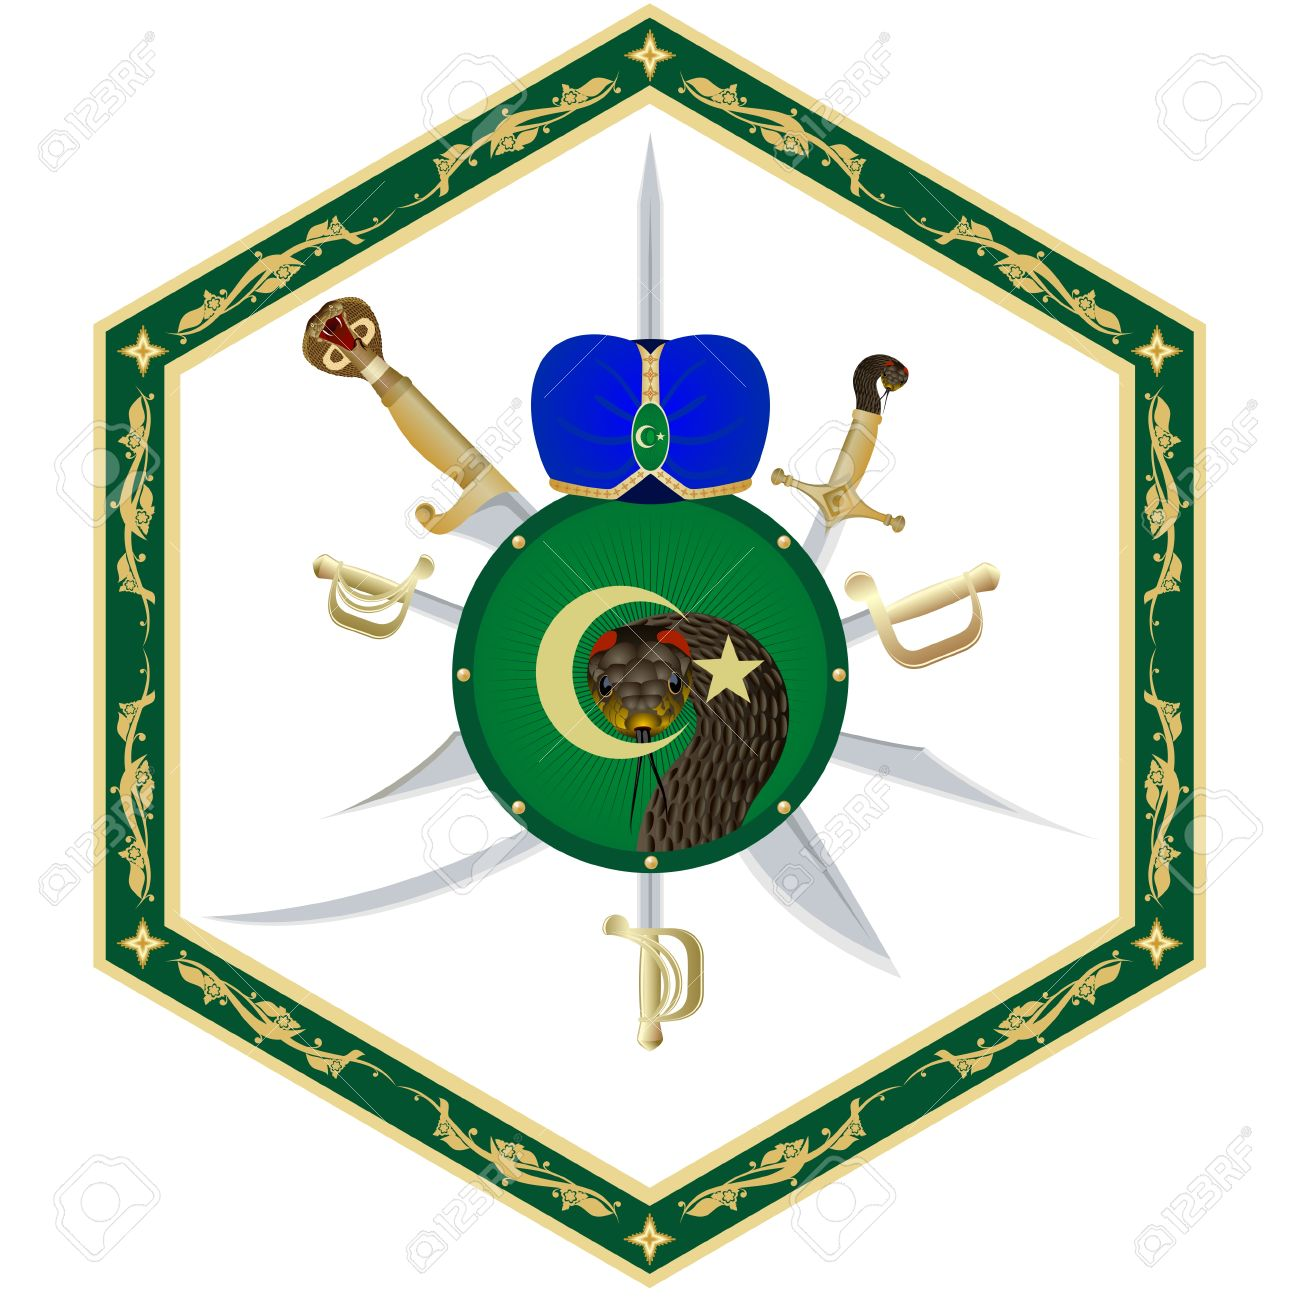 1300x1300 Muslim Head Covering, Shield And Weapons In An Abstract Frame